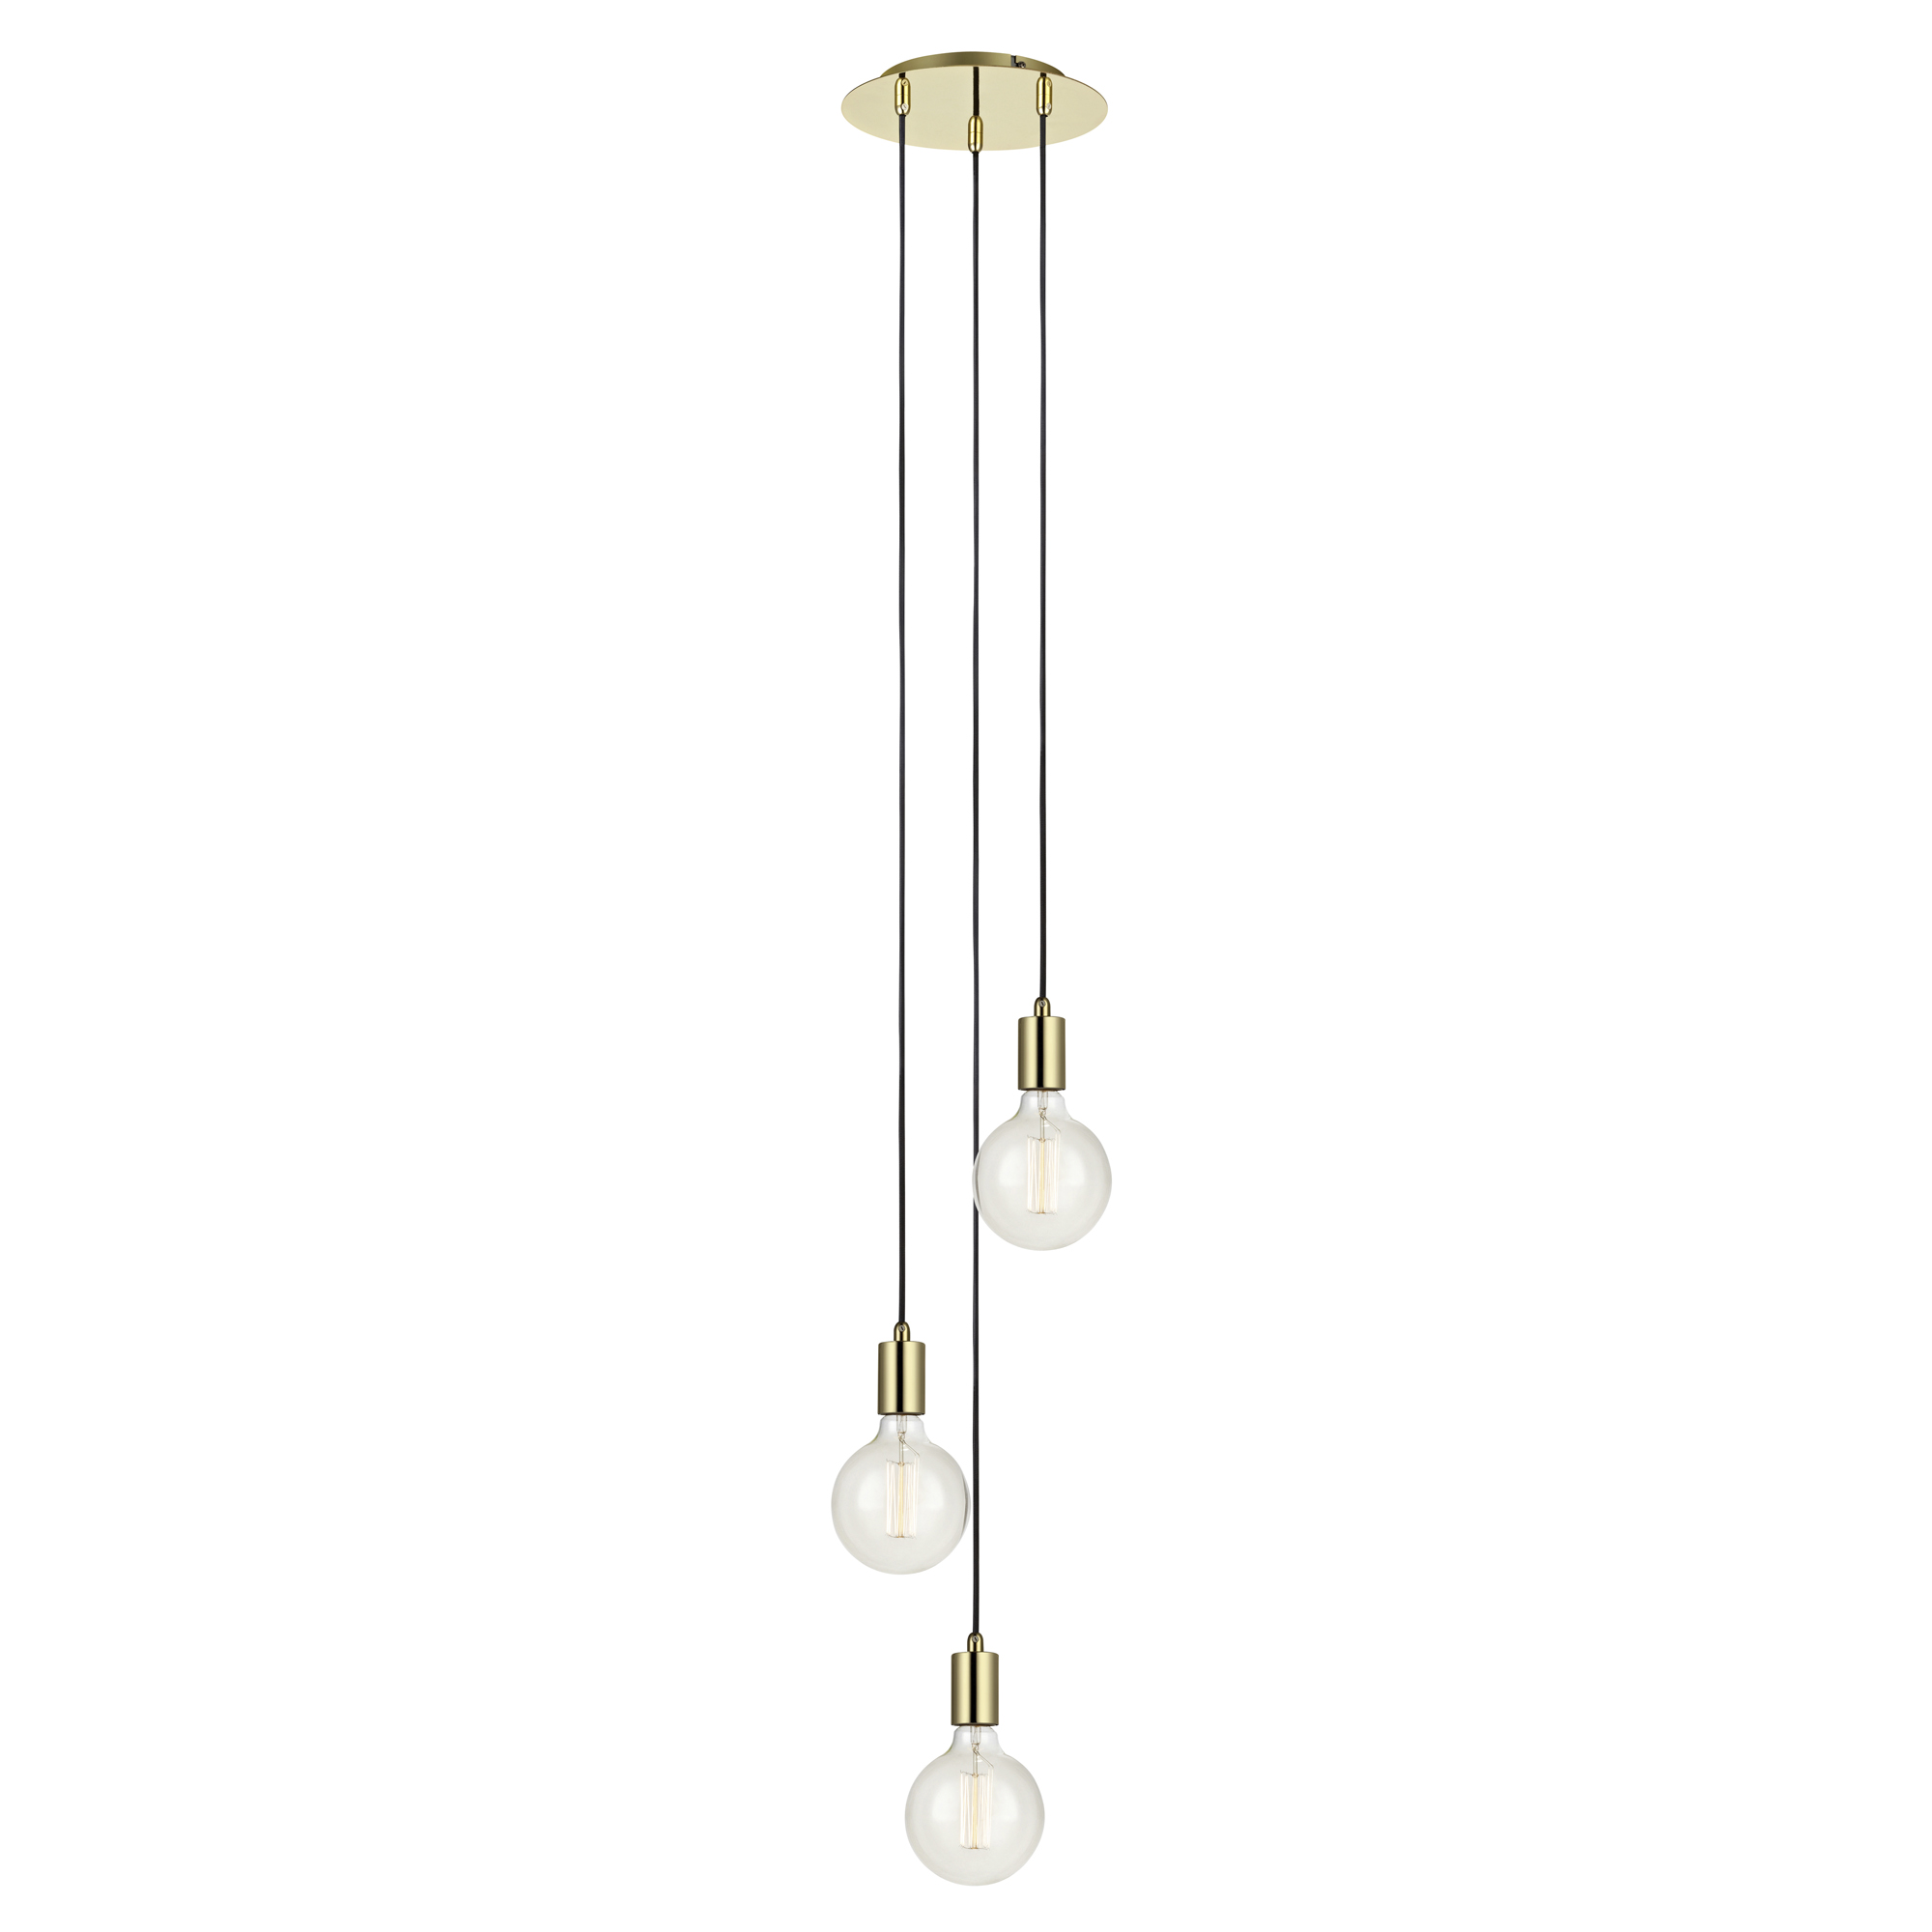 Sky 3-lichts Hanglamp messing